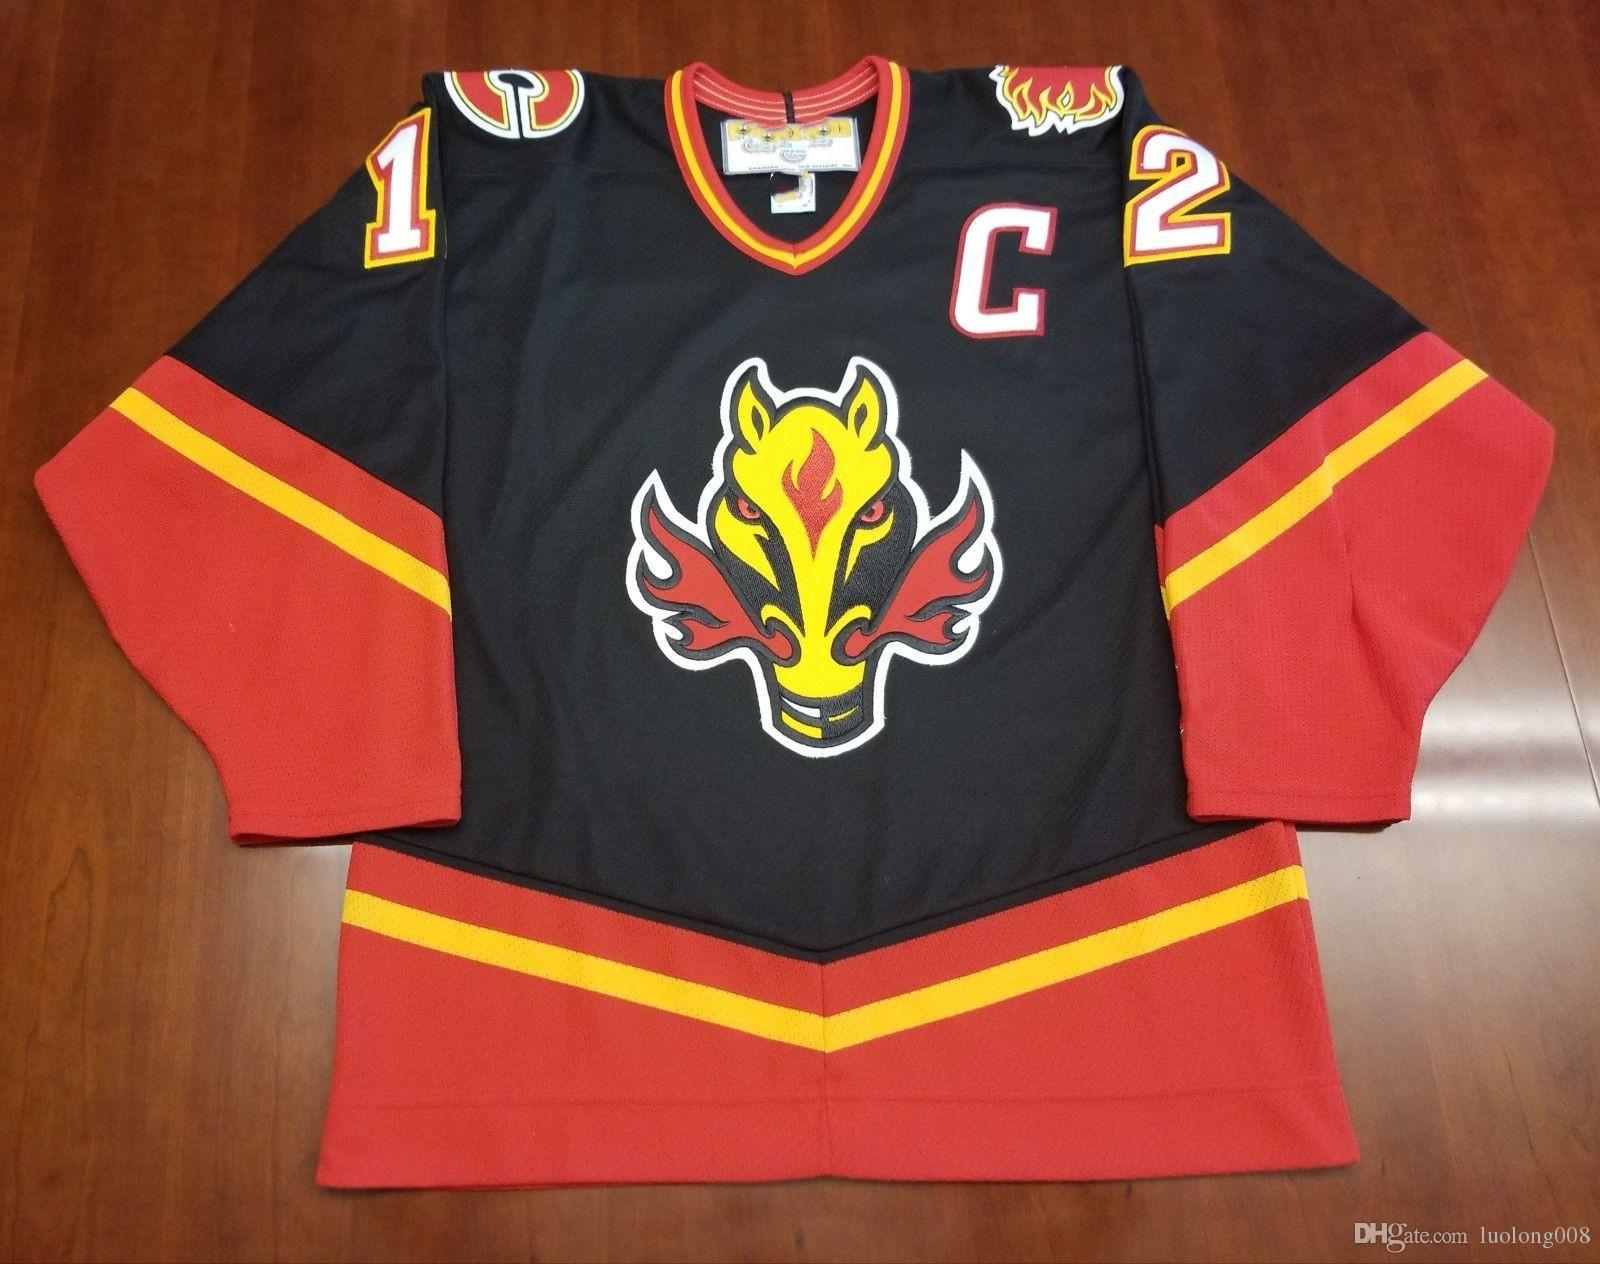 huge discount 7f509 cfb8a Vintage Calgary Flames #12 Jarome Iginla Hockey Jersey Embroidery Stitched  Customize any number and name Jerseys